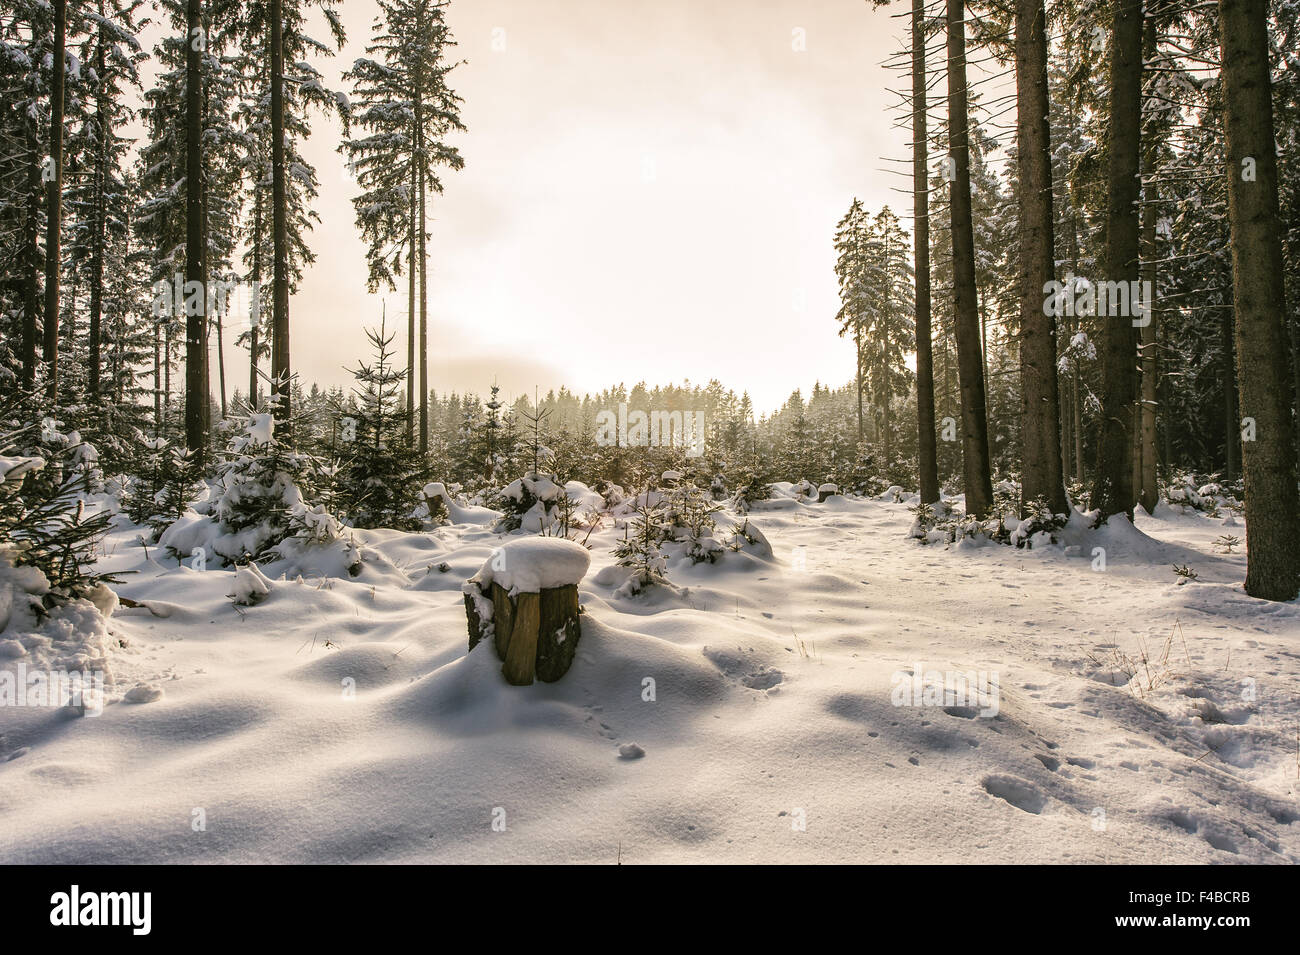 Snowy conifer tree forest - Stock Image